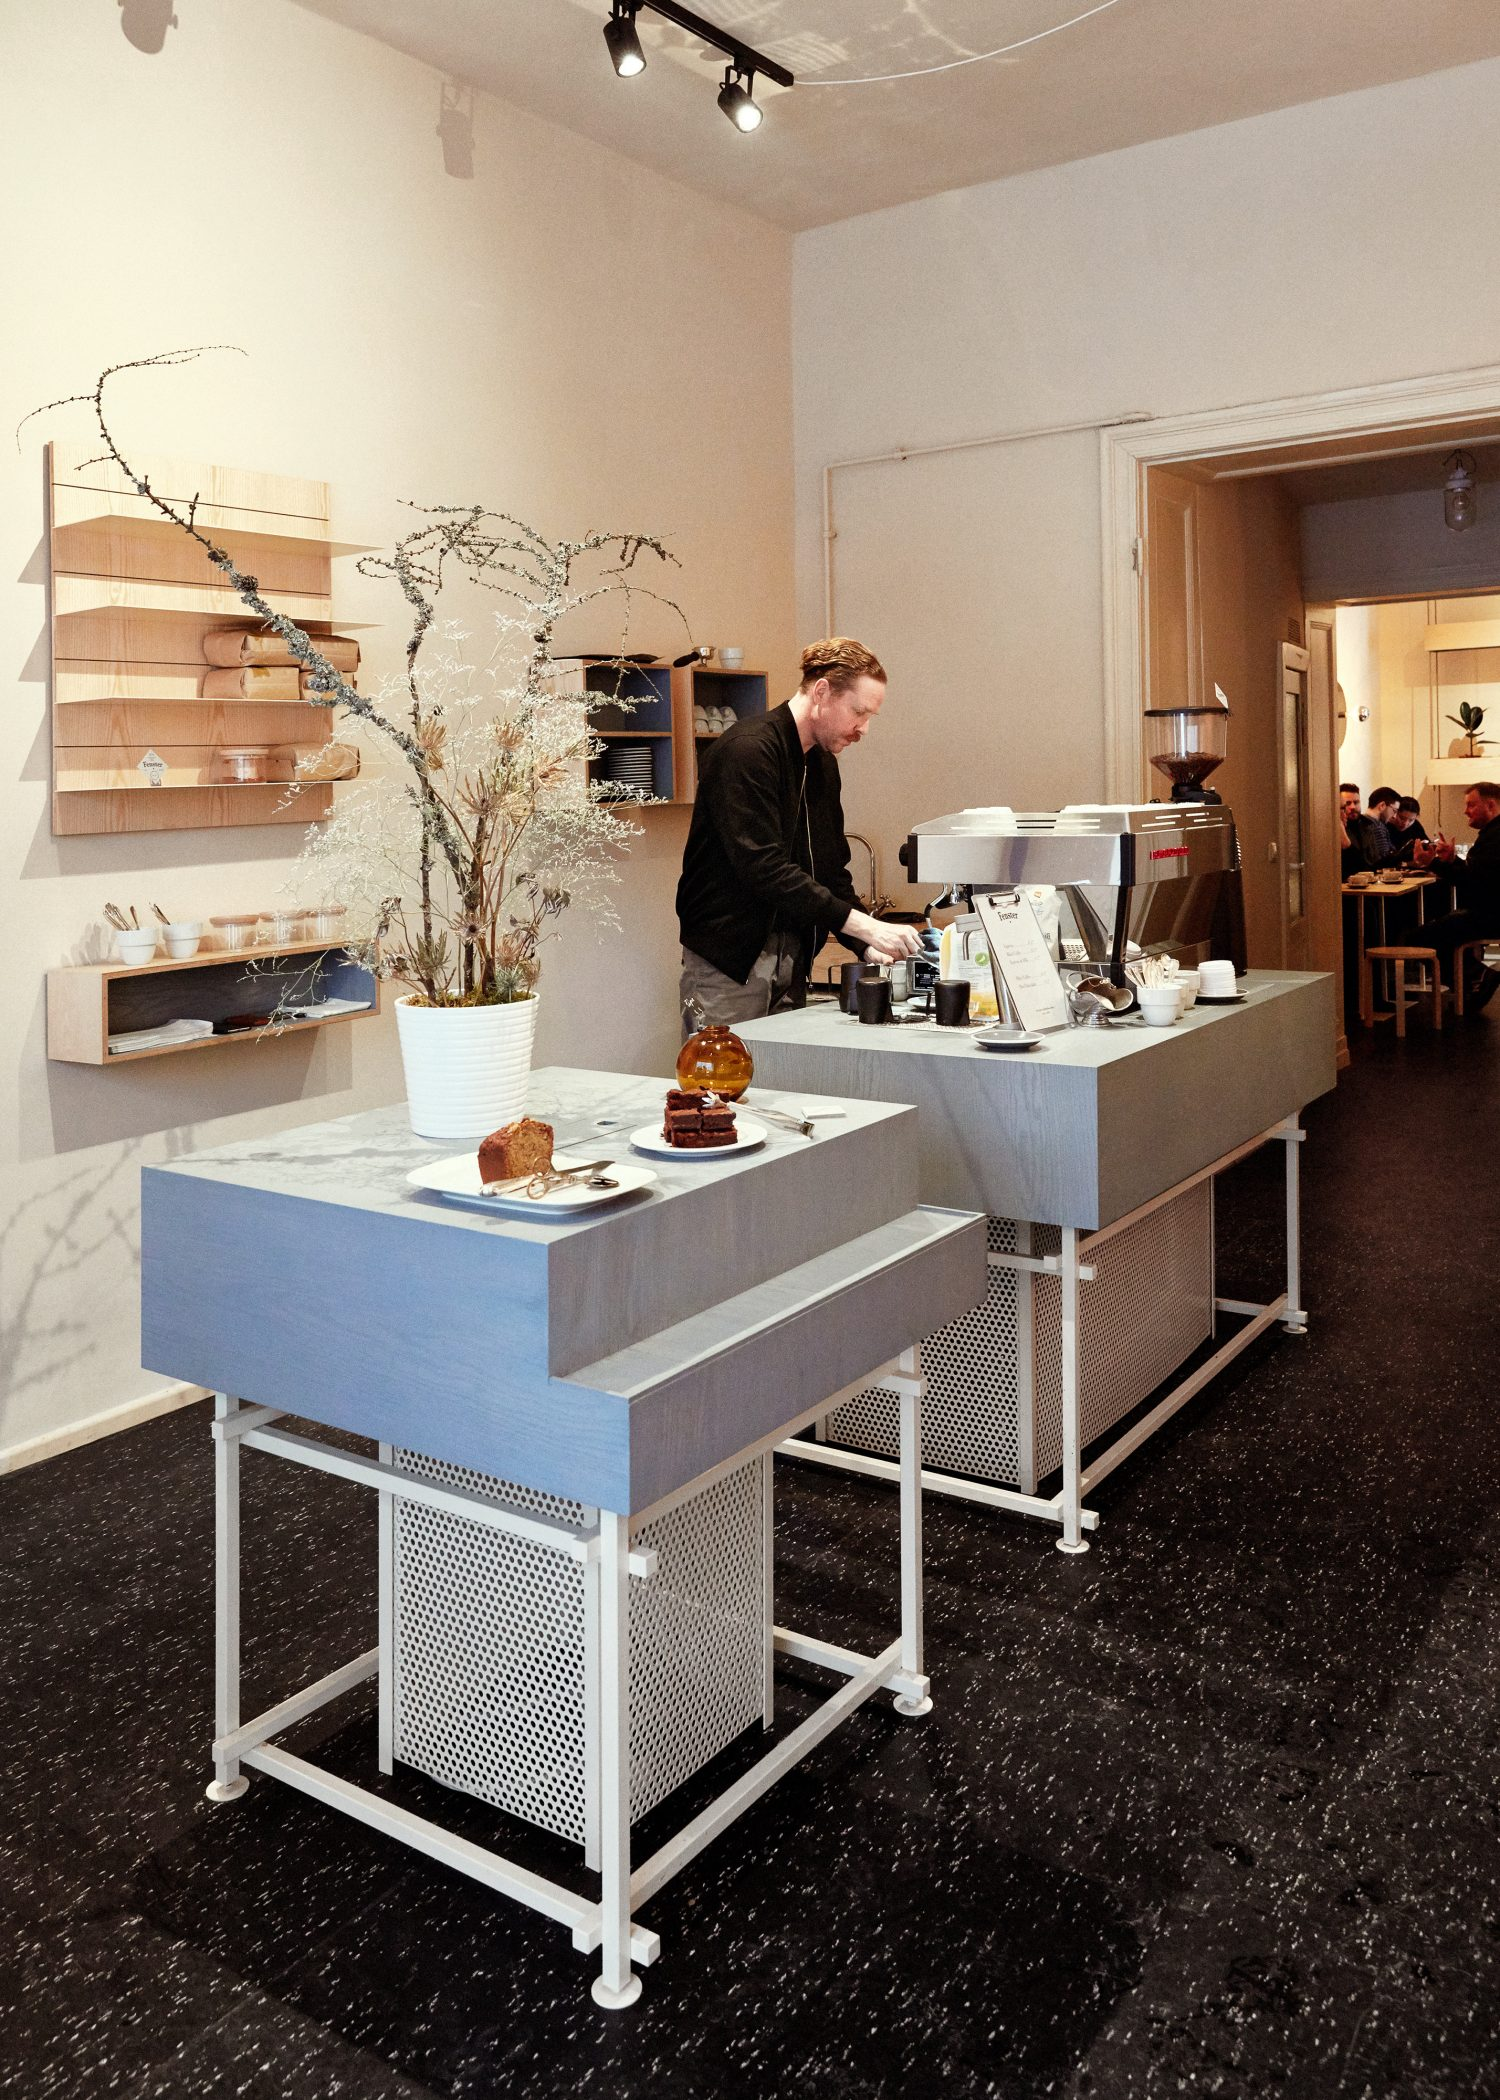 modiste furniture – fenster coffee berlin